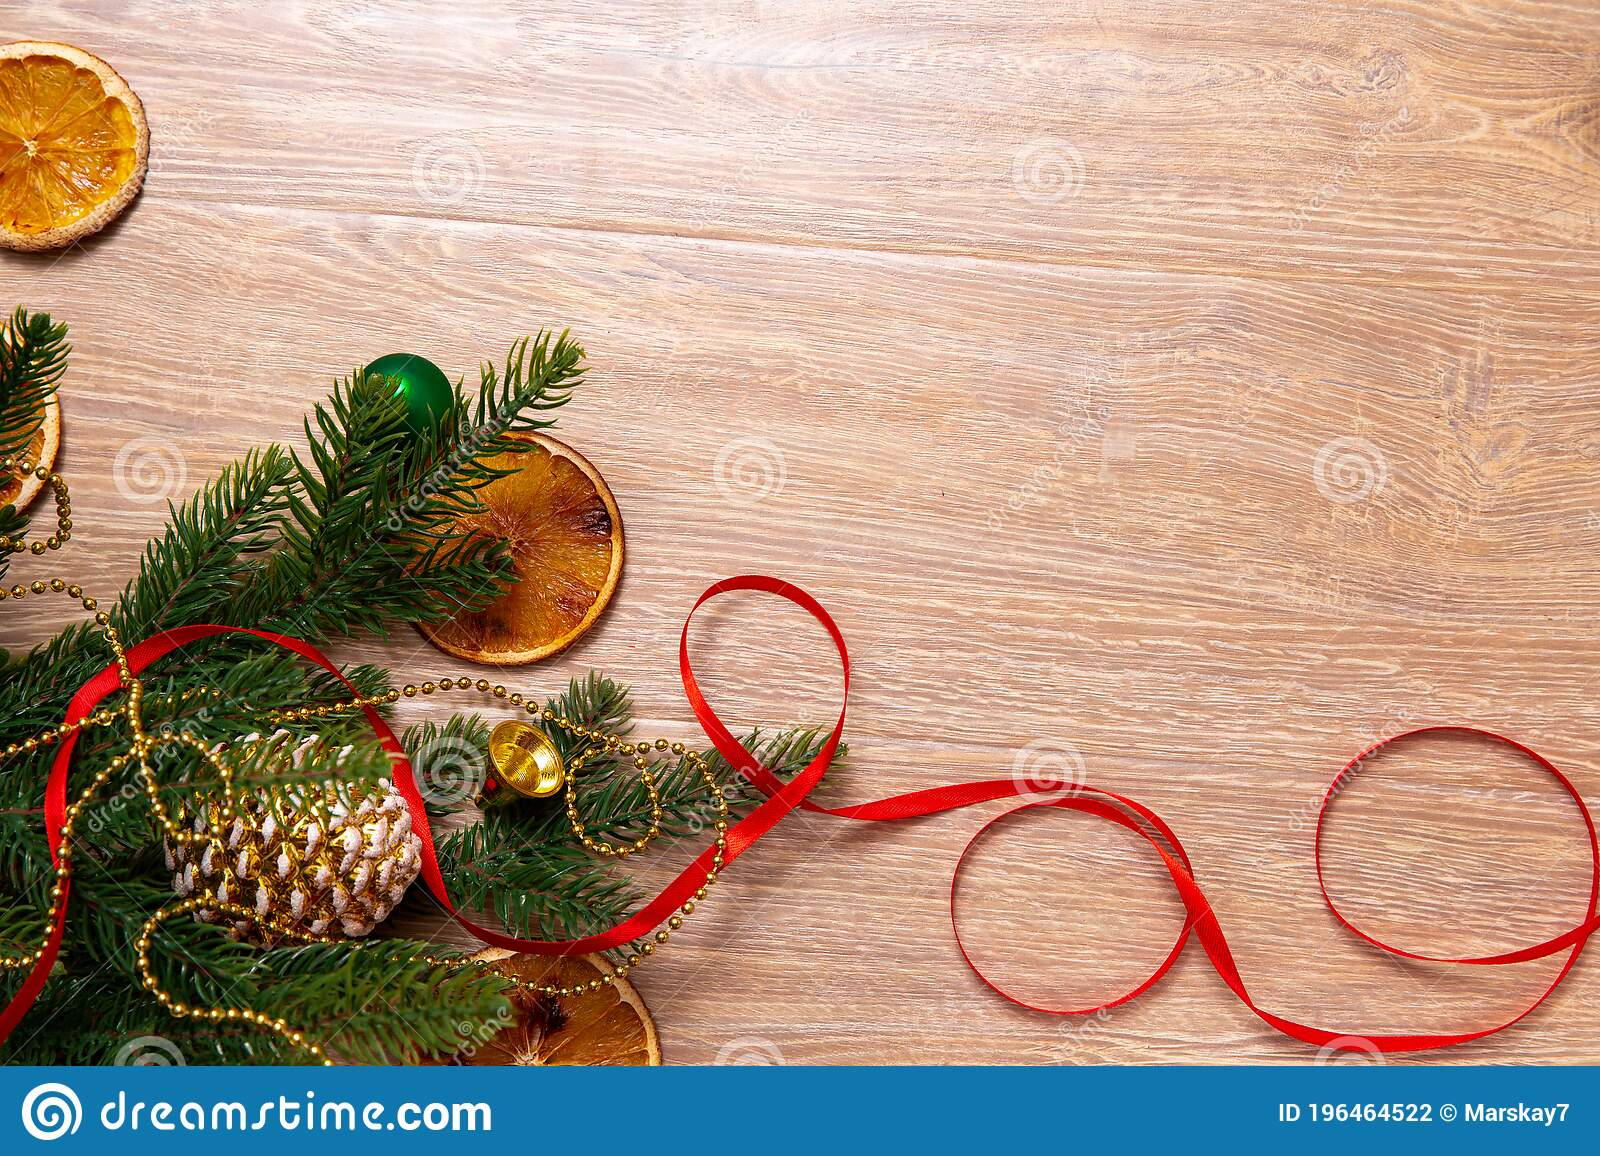 Xmas Banner With Cone Oranges Tape Beads And Christmas Tree On Wooden Background Copyspace New Year Top View Stock Photo Image Of Card Glittering 196464522